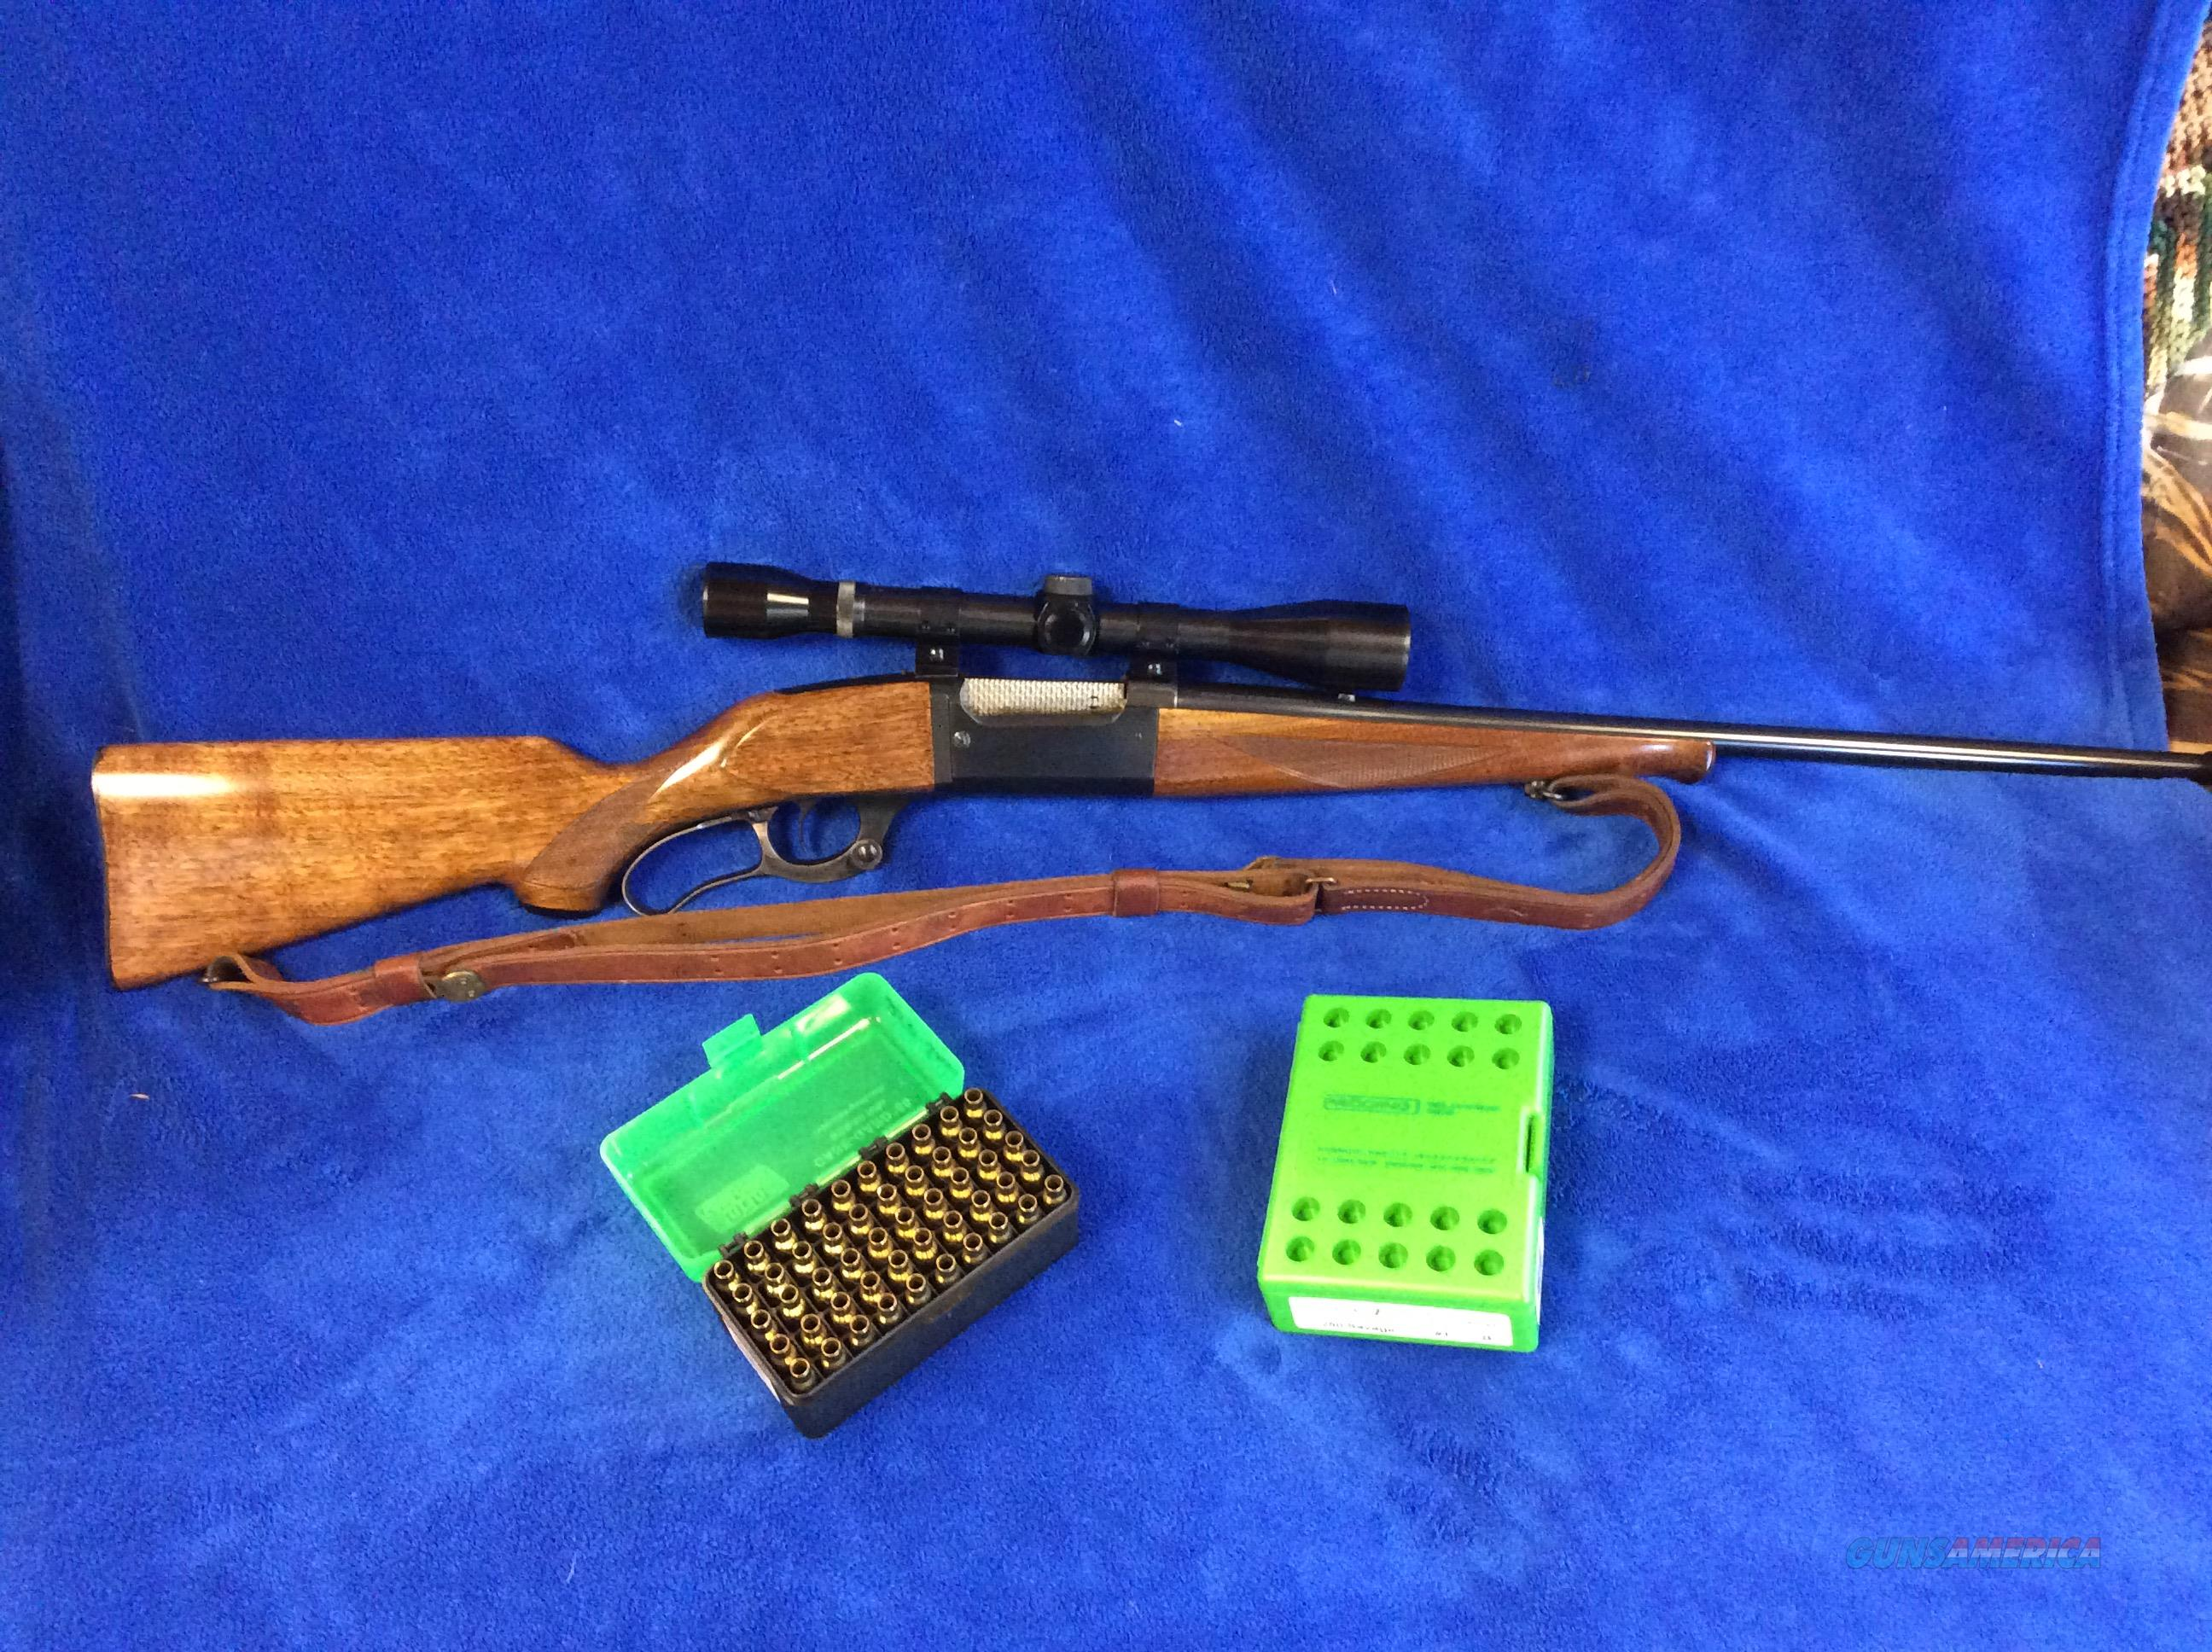 Savage 99 in 250 Savage w/ vintage weaver K6/Dies/Brass  Guns > Rifles > Savage Rifles > Model 95/99 Family